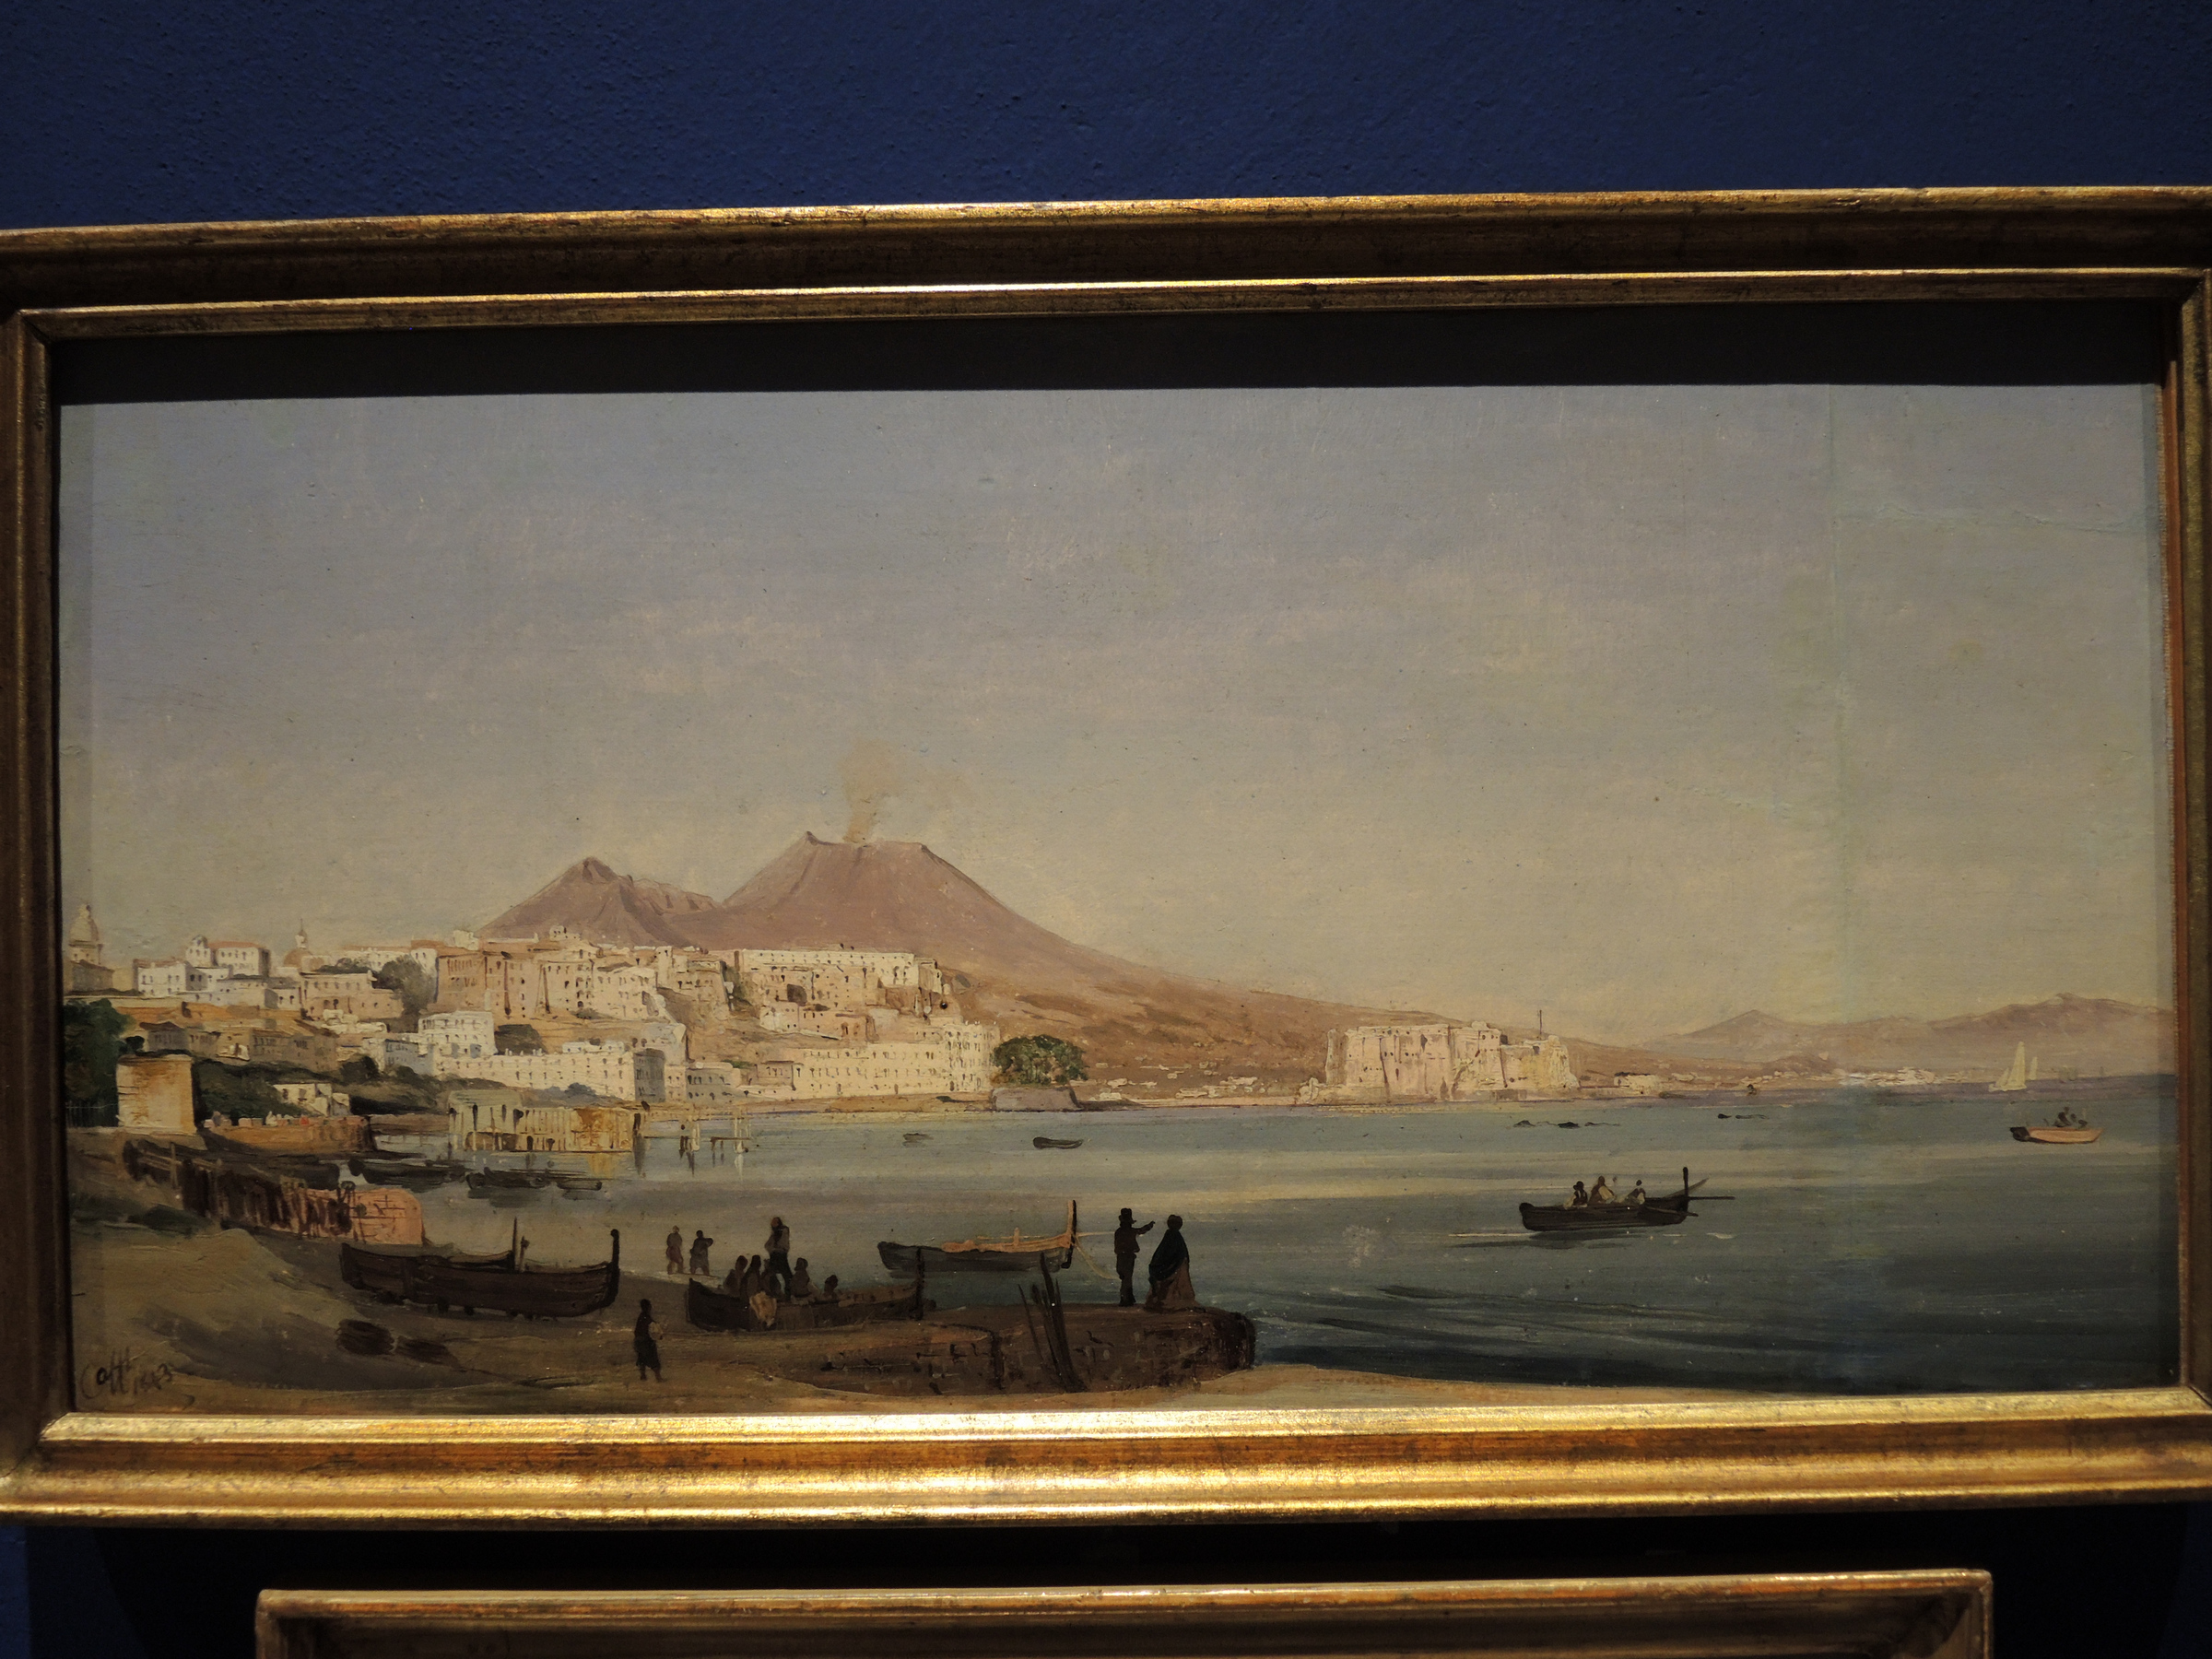 Naples, view from the shore of Chiaia - 1843